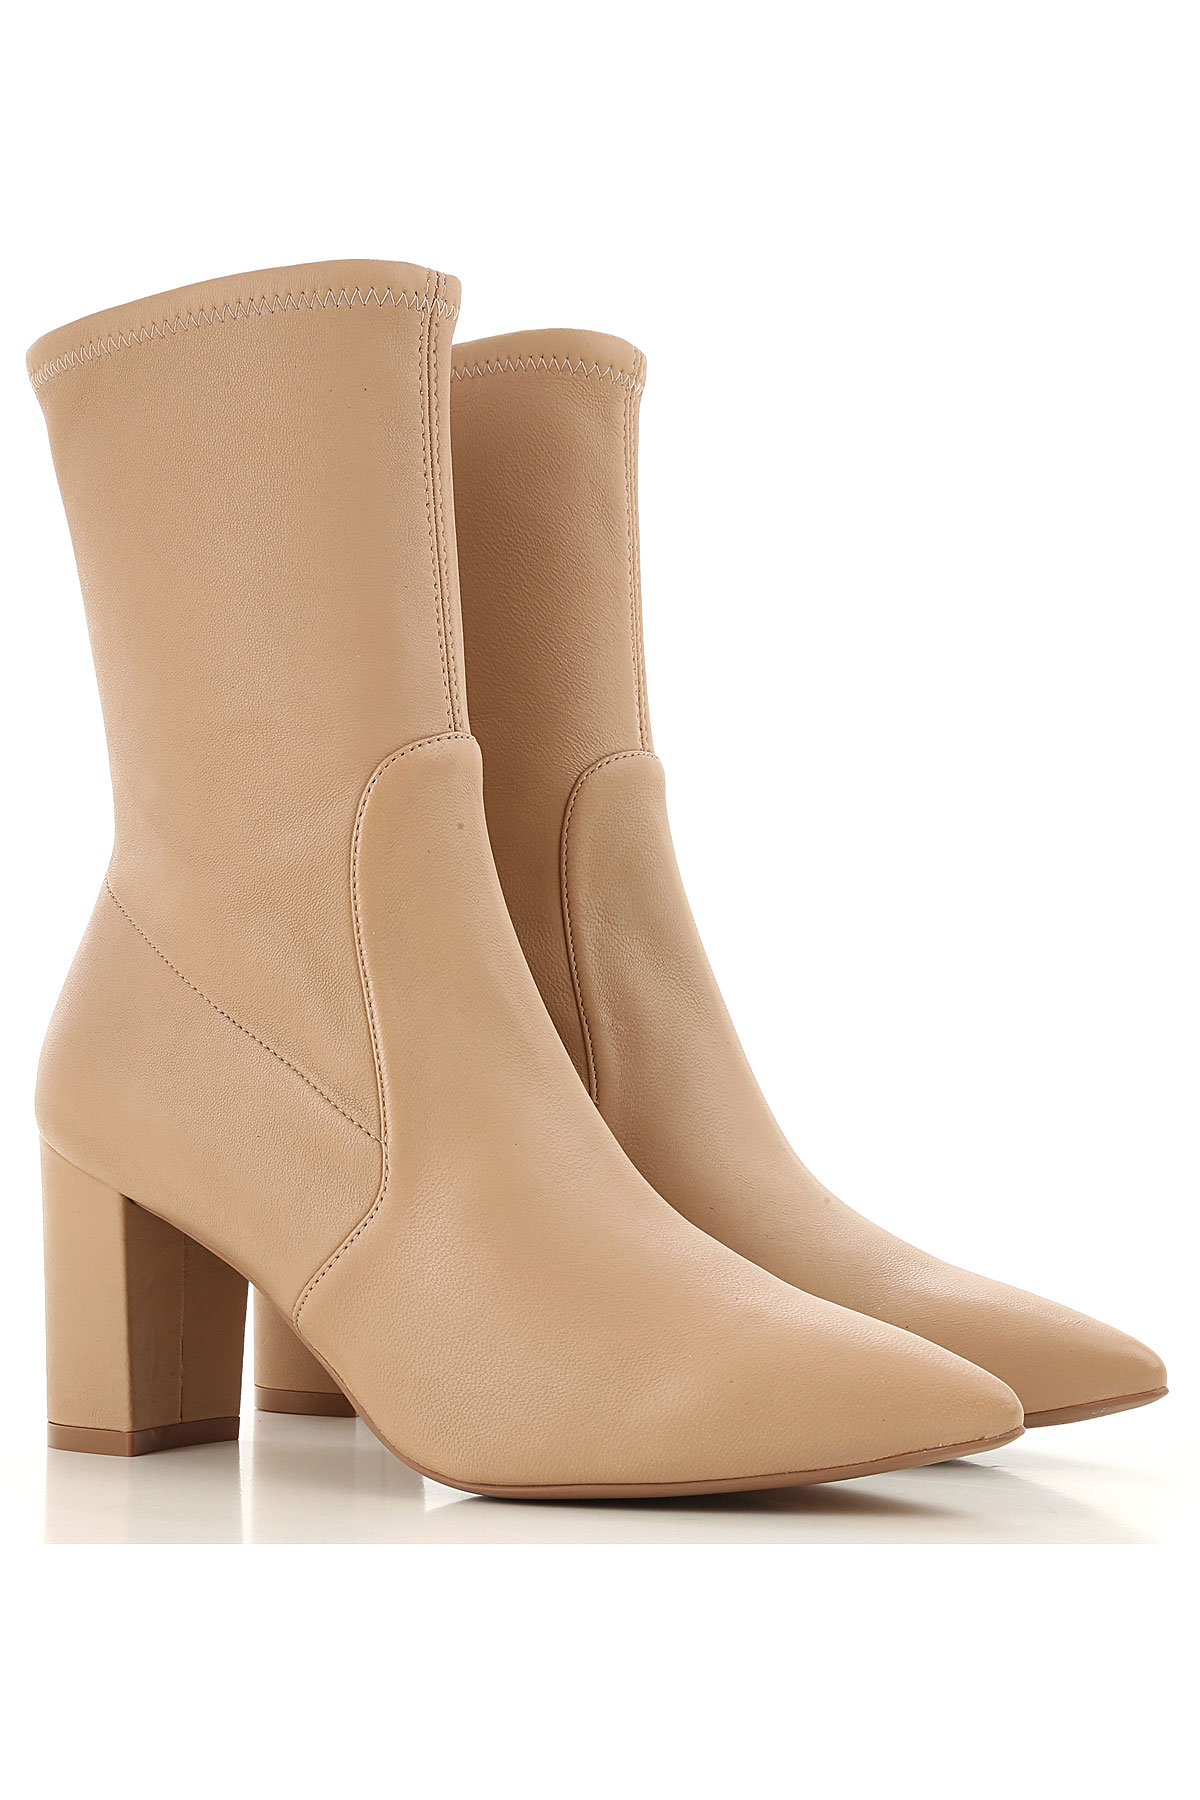 Stuart Weitzman Boots for Women, Booties On Sale, Adobe, Leather, 2019, 10